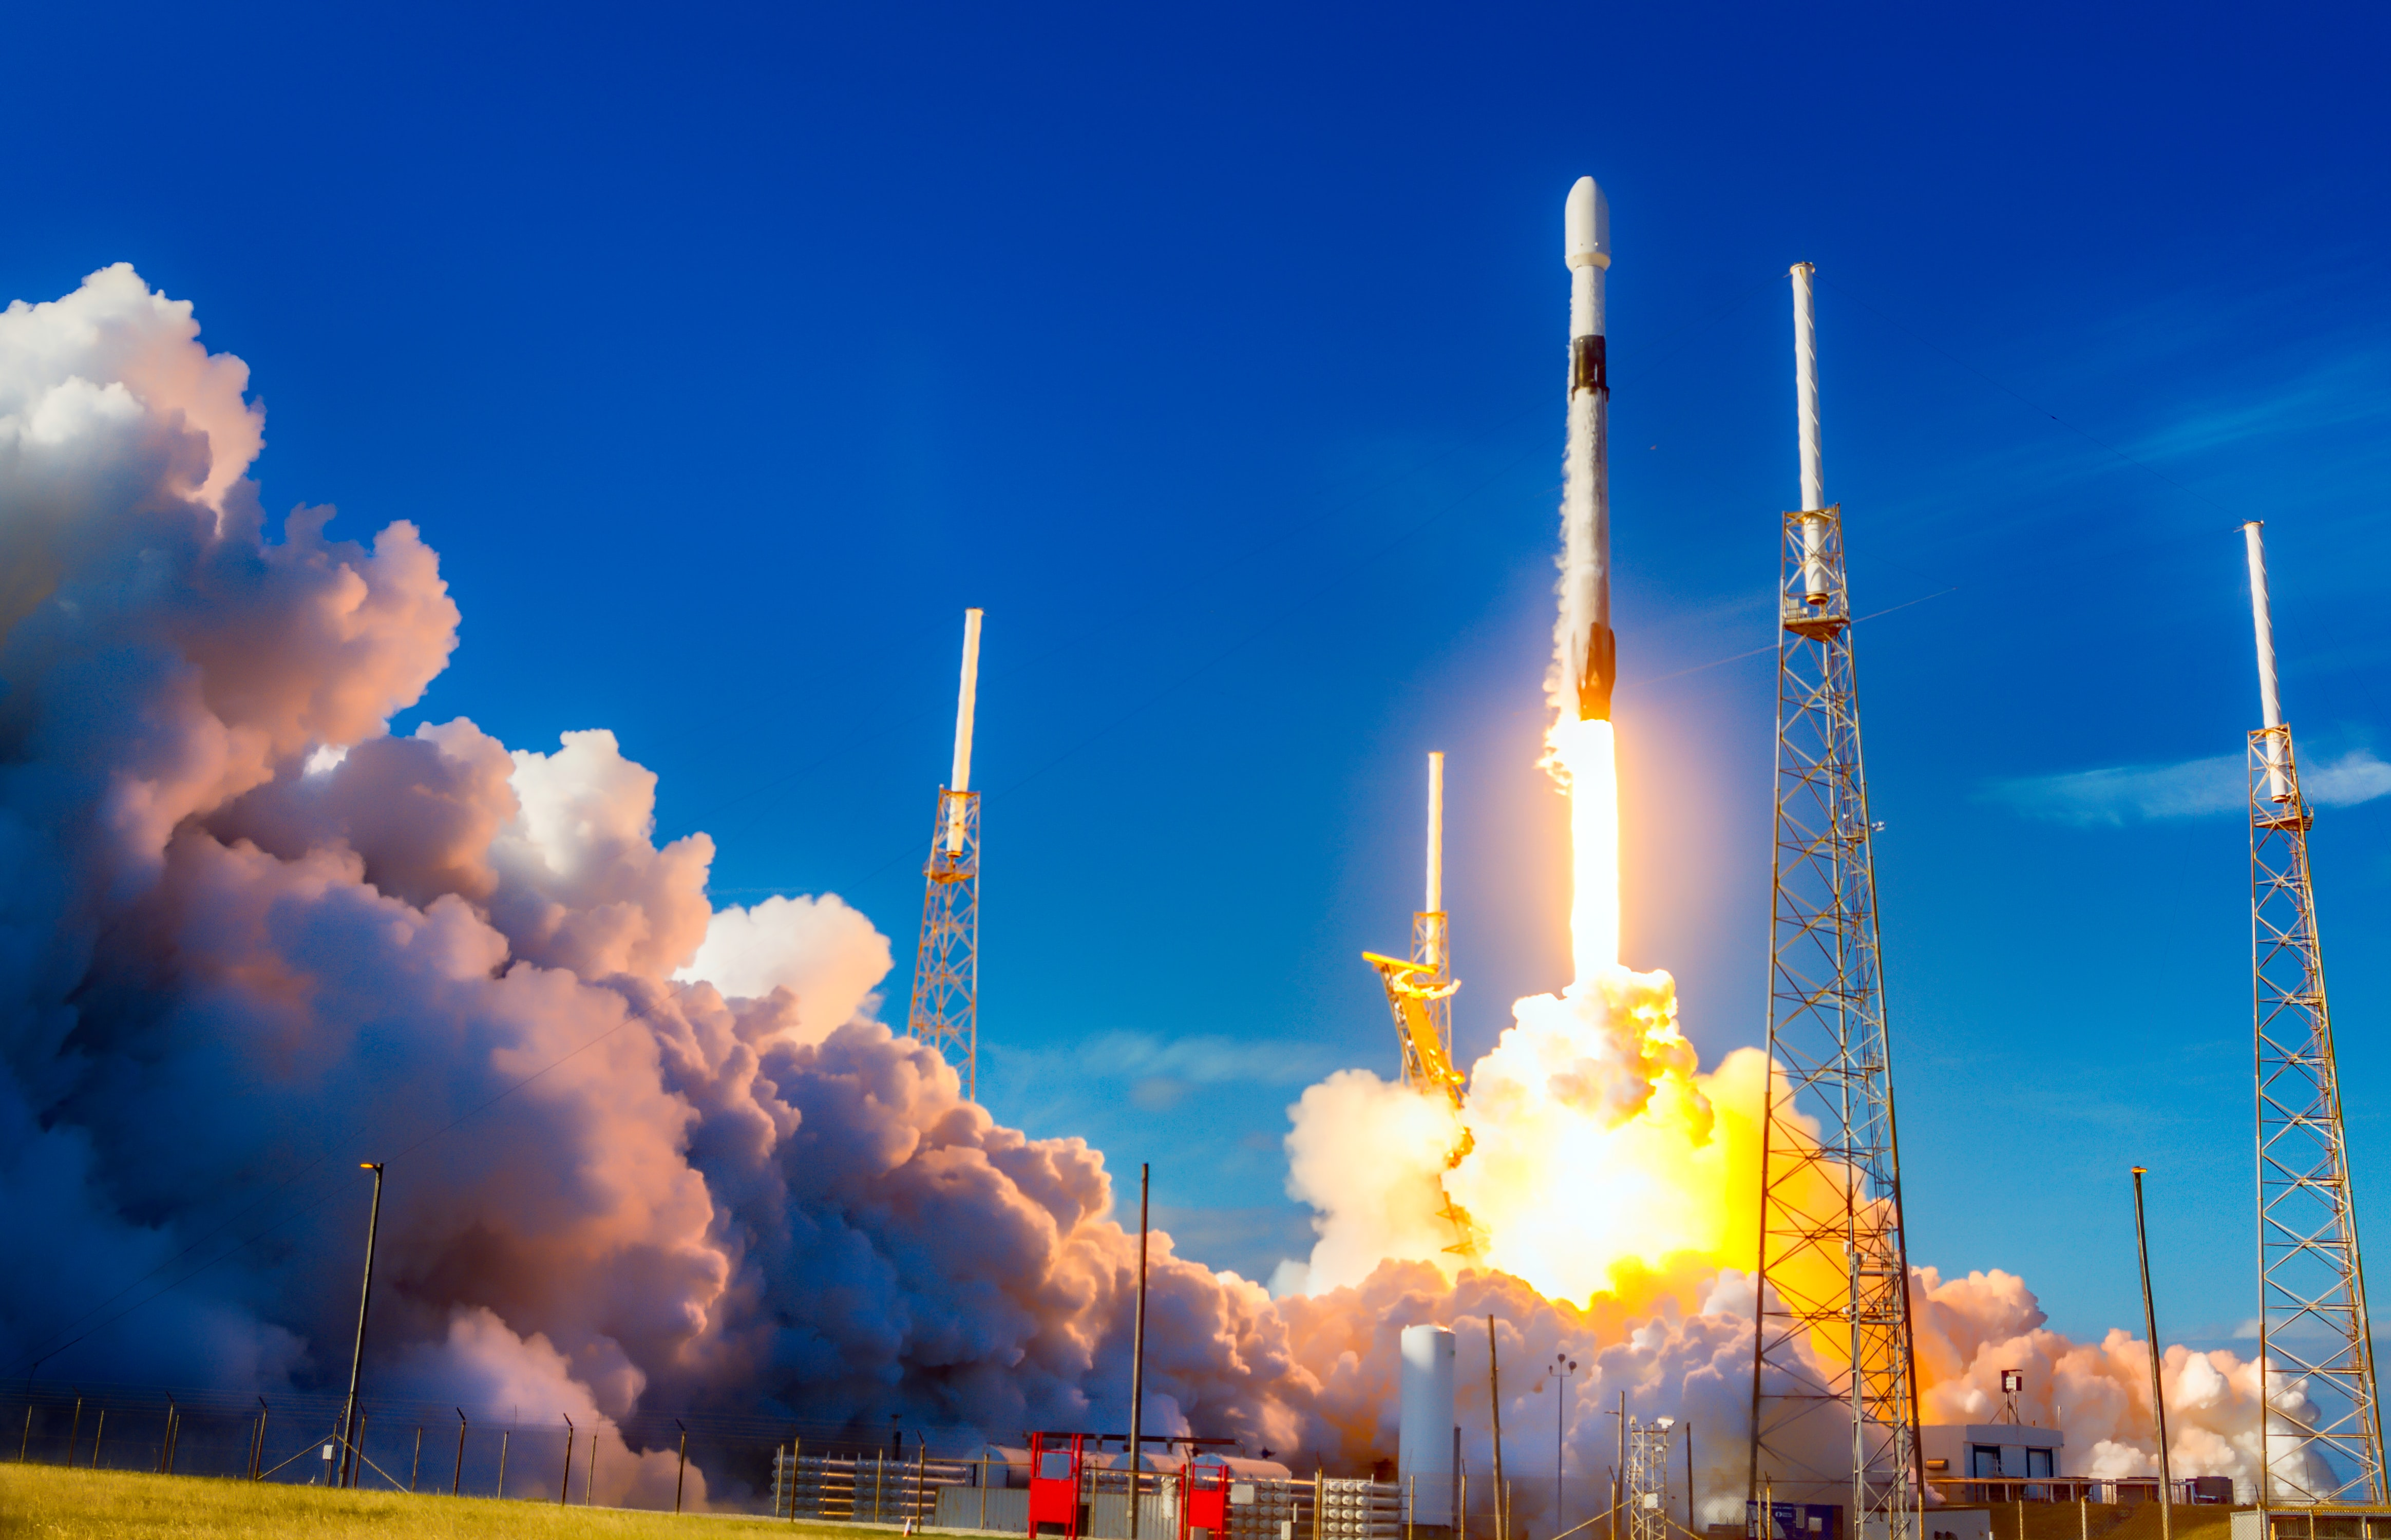 We have liftoff: How to successfully launch your product